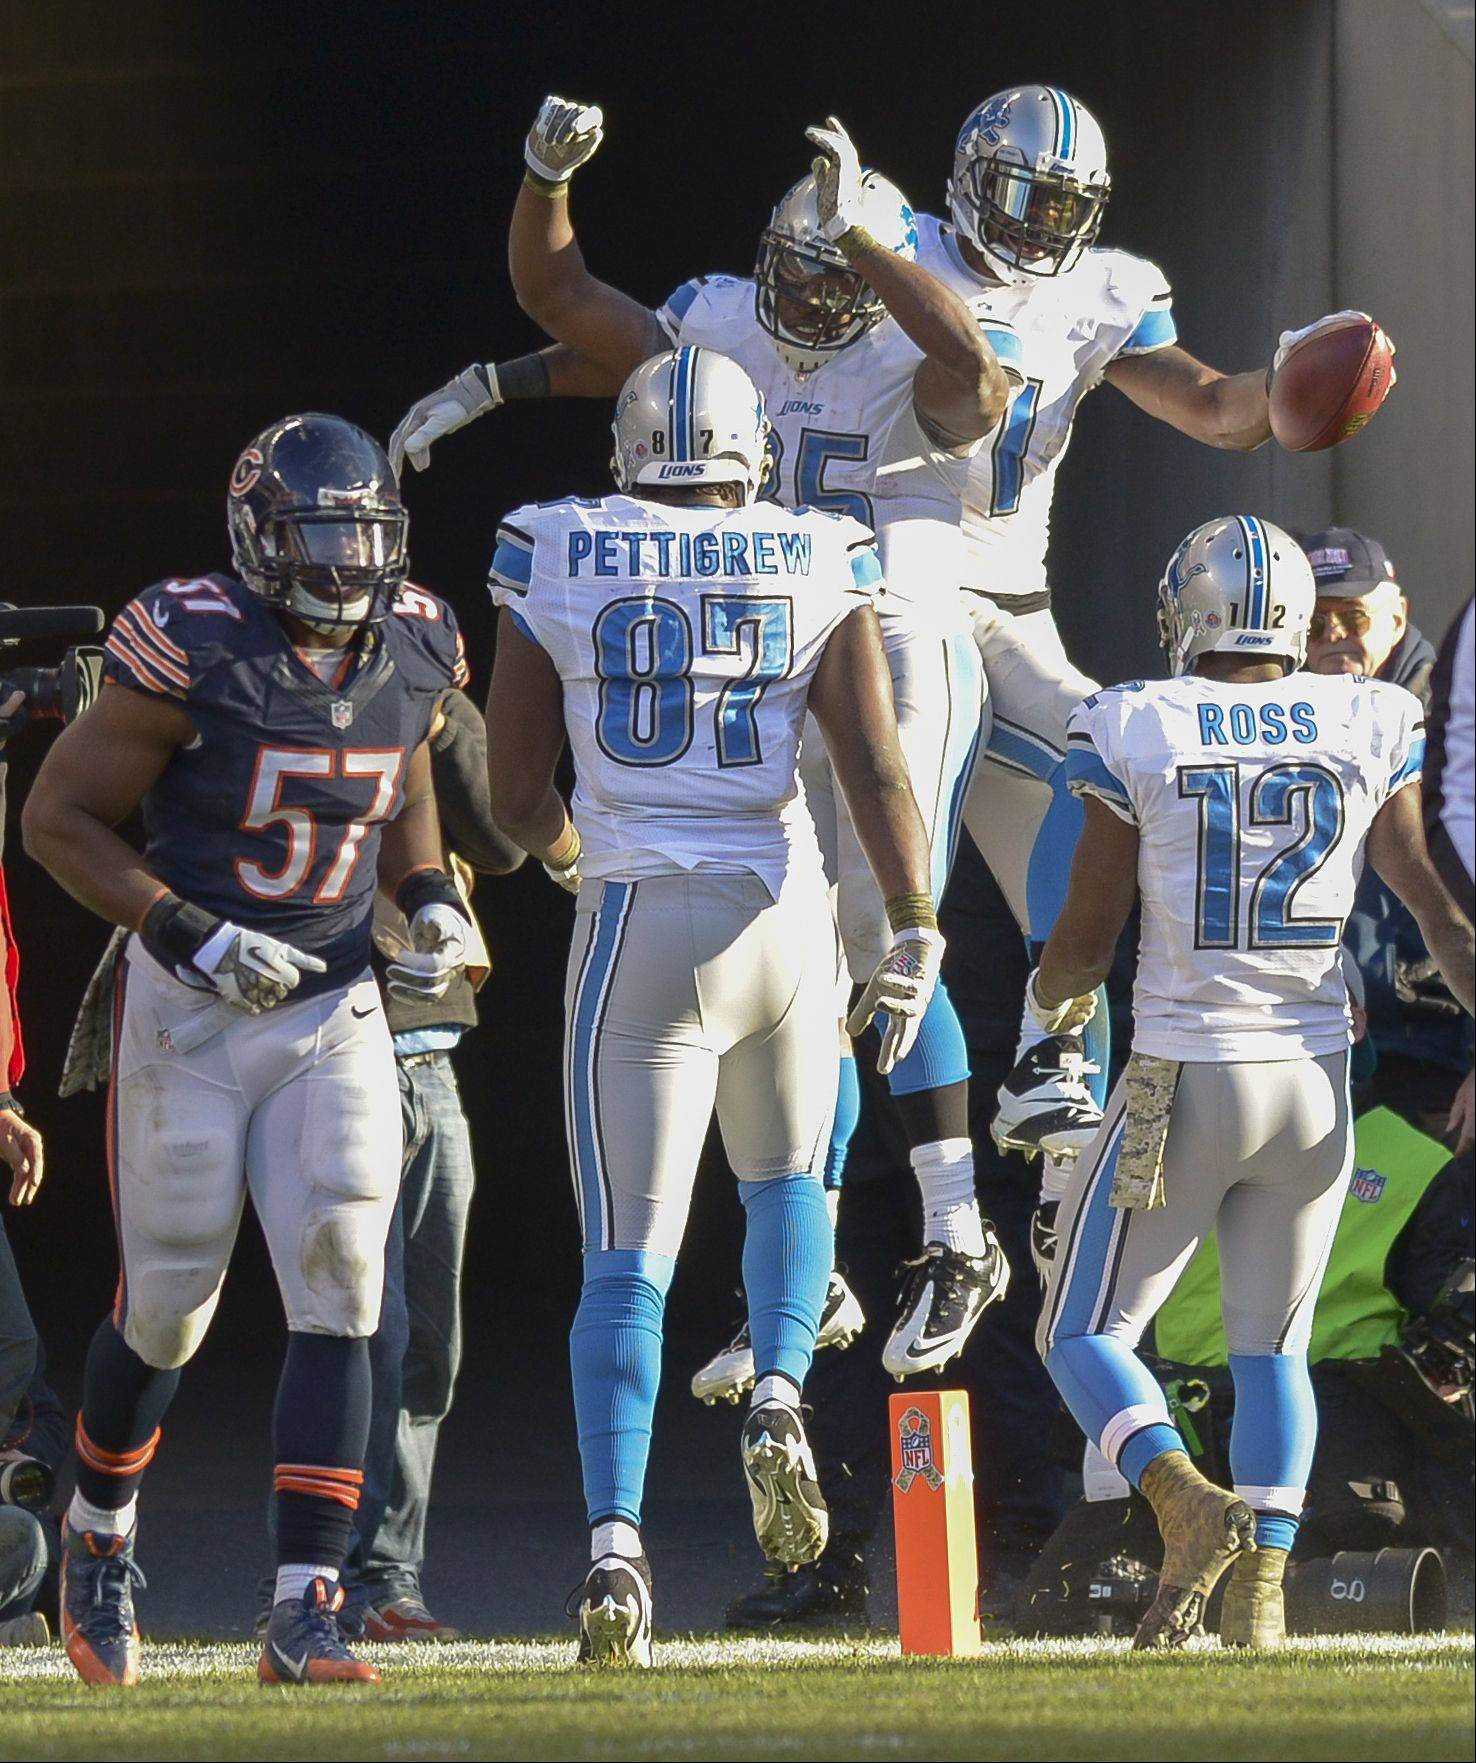 The Detroit Lions celebrate a 4th quarter touchdown against the Chicago Bears Sunday in Chicago.